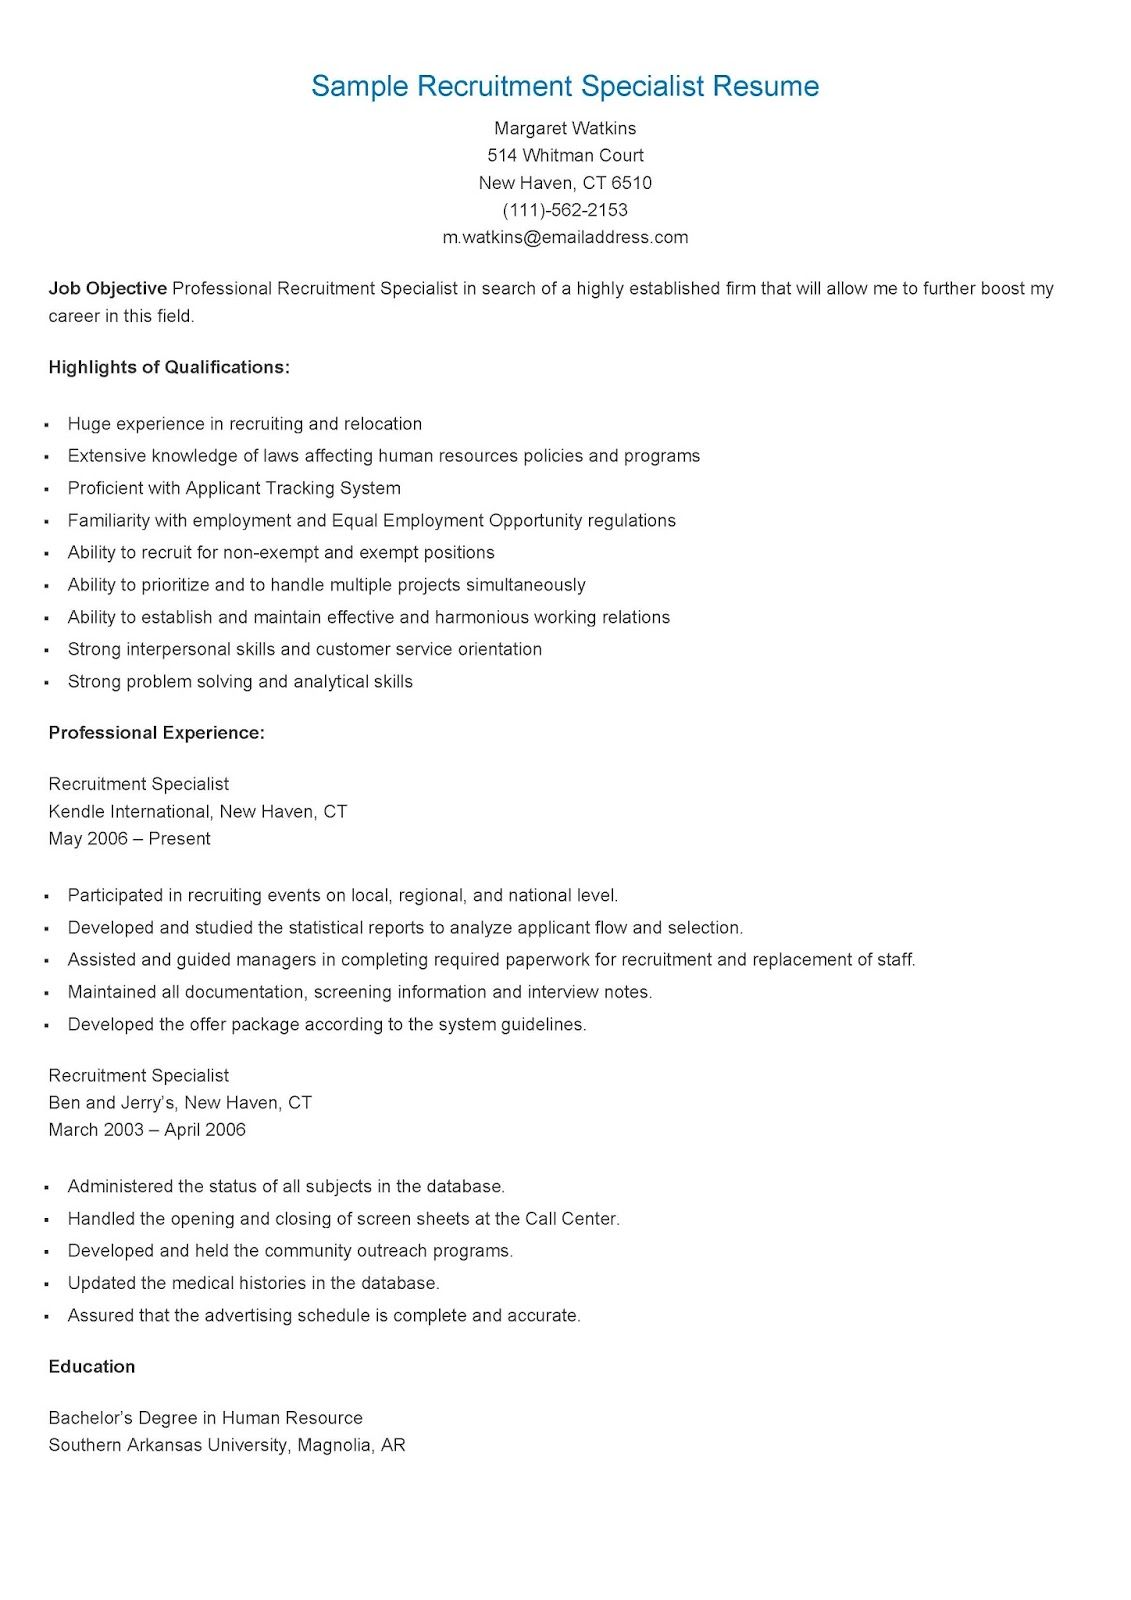 sample recruitment specialist resume resame pinterest resume